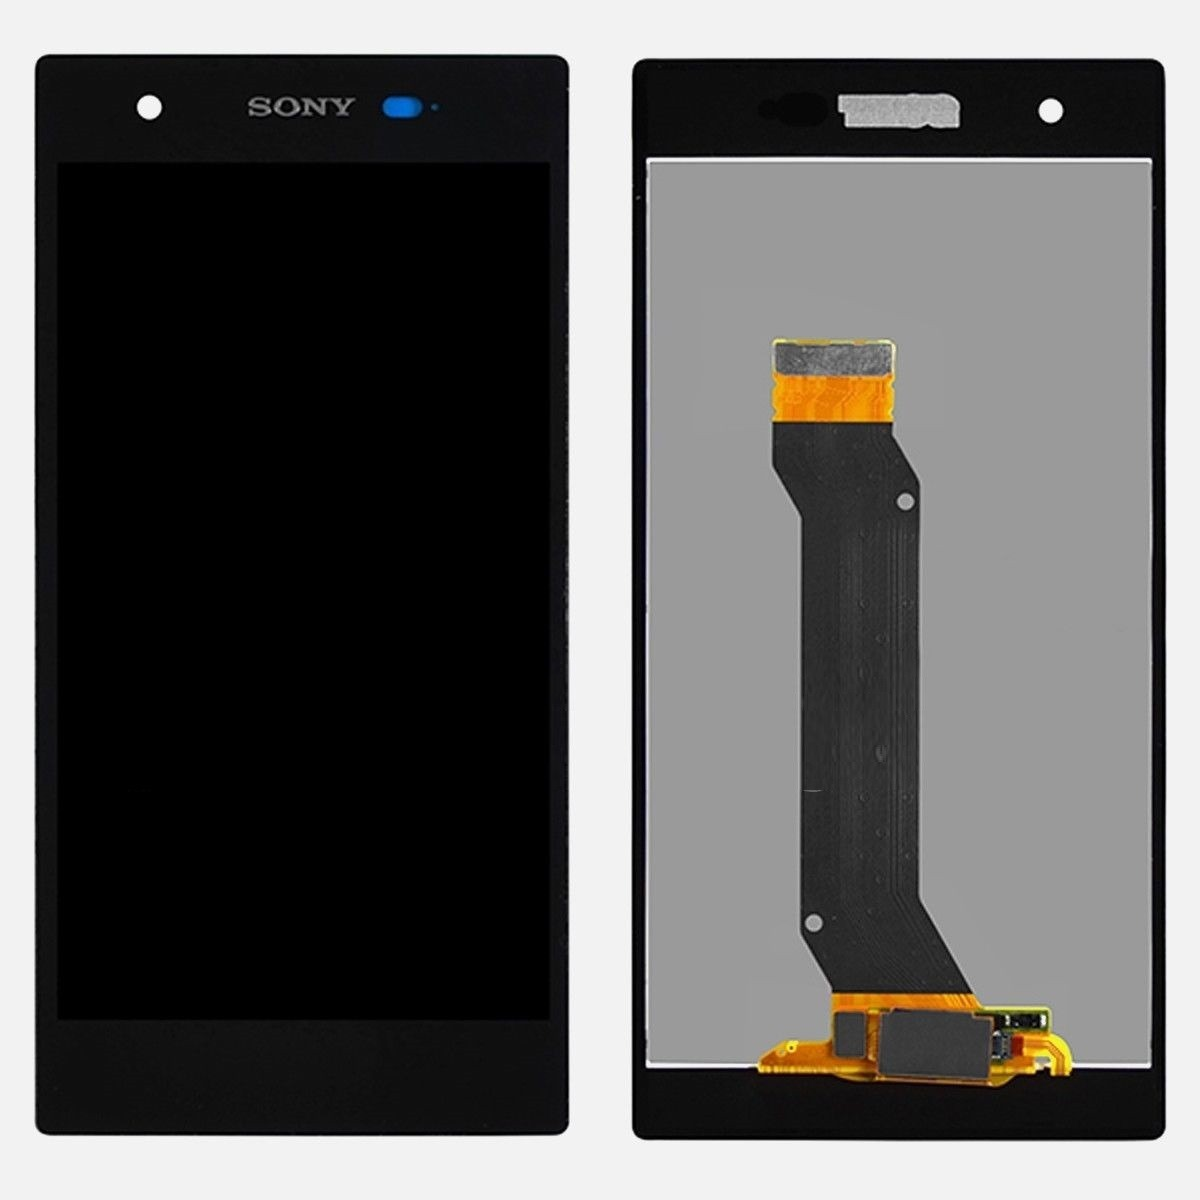 Sony Xperia Z1s L39T C6916 Lcd Display Digitizer Touch Screen